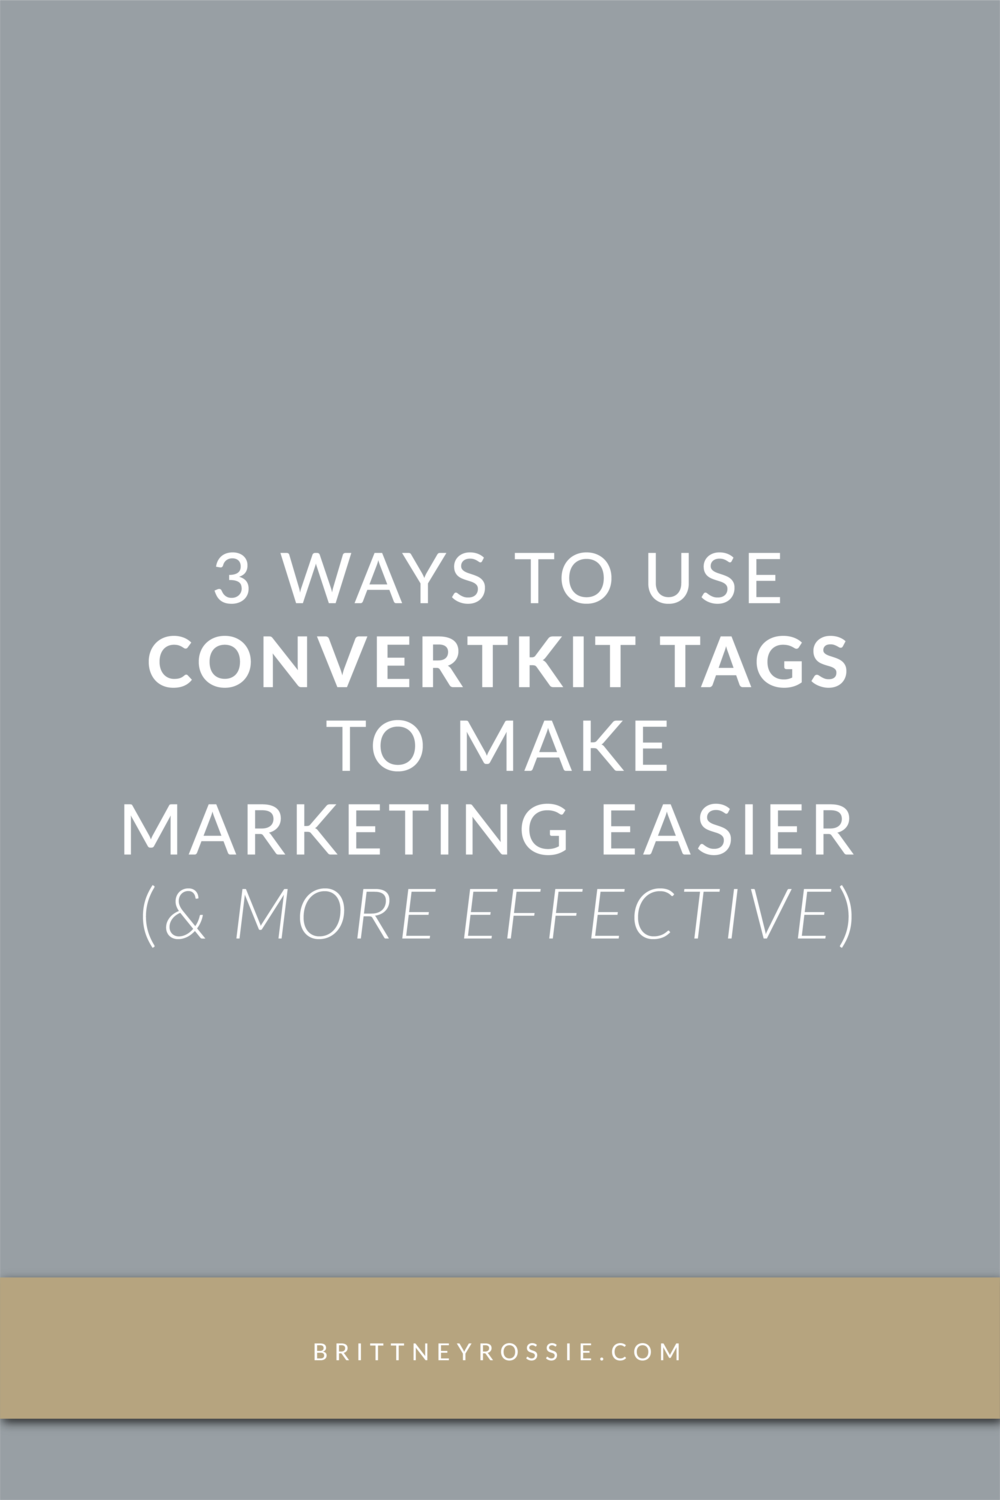 3-Ways-to-Use-Convert-Kit-Tags_BrittneyRossie.com